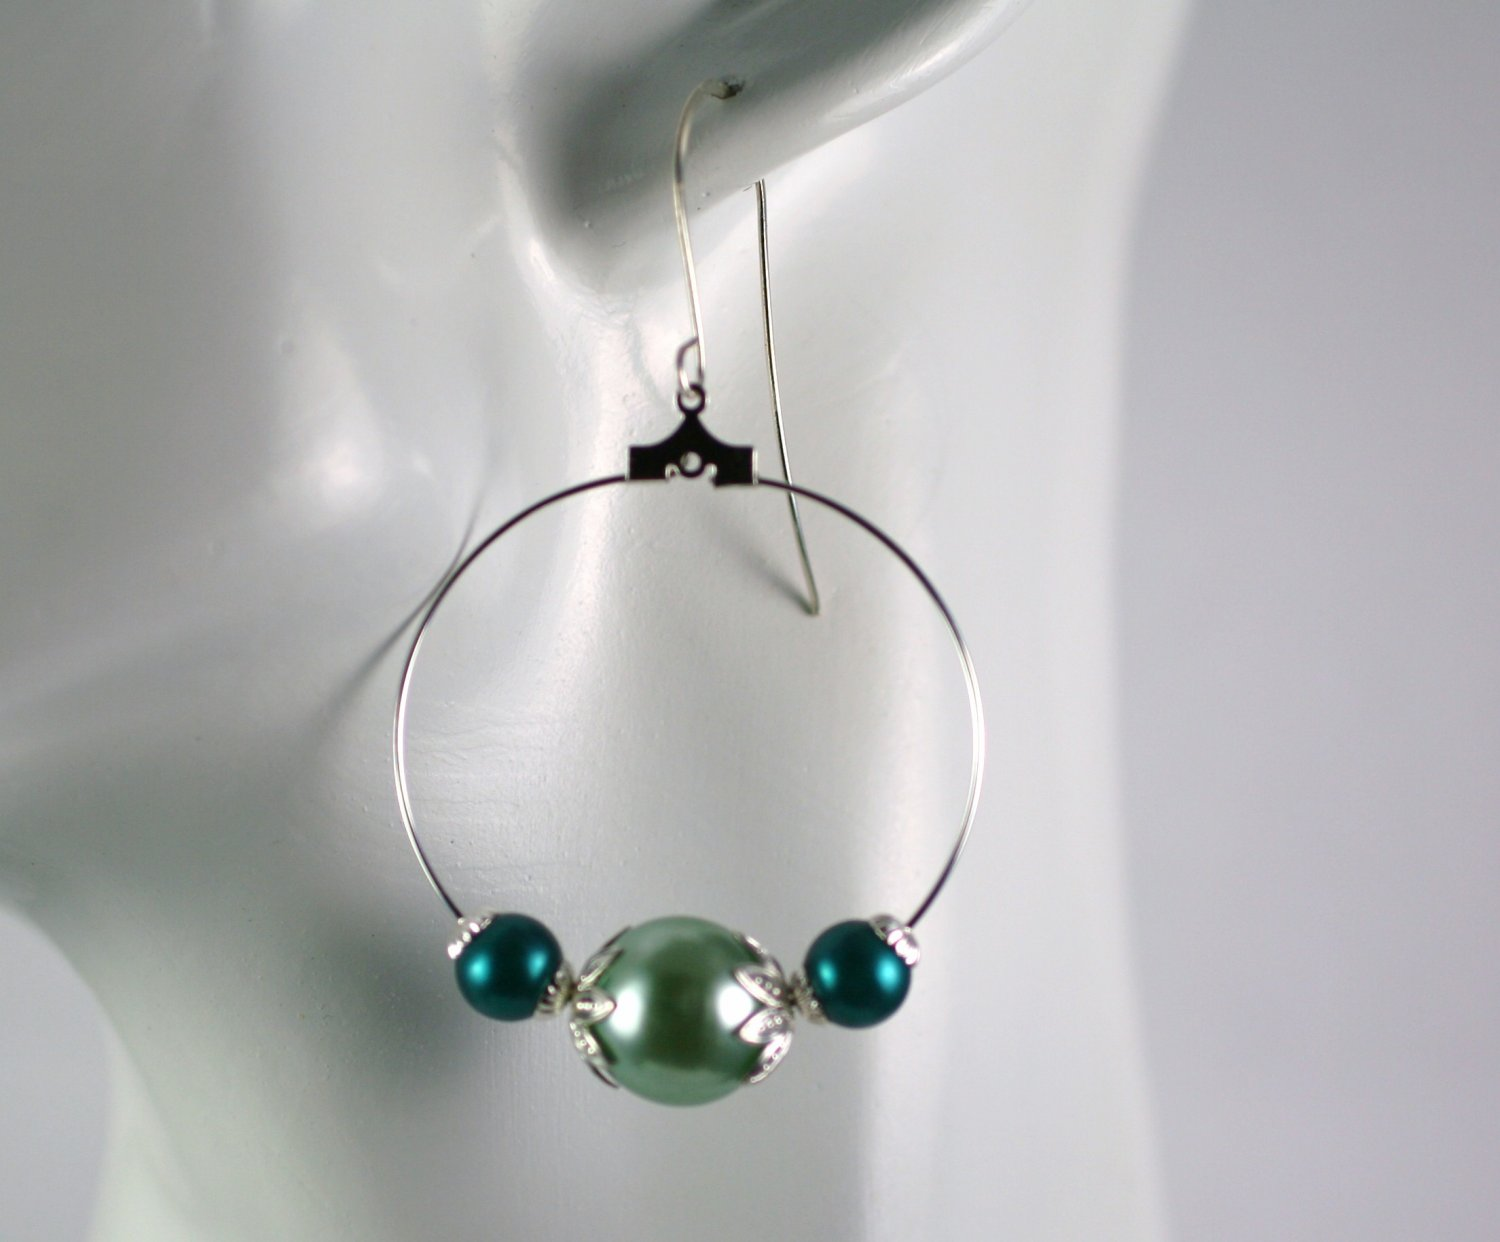 Silver Hoop Earrings with Green Faux Pearl Beads 1.5 in.  Handcrafted Jewelry